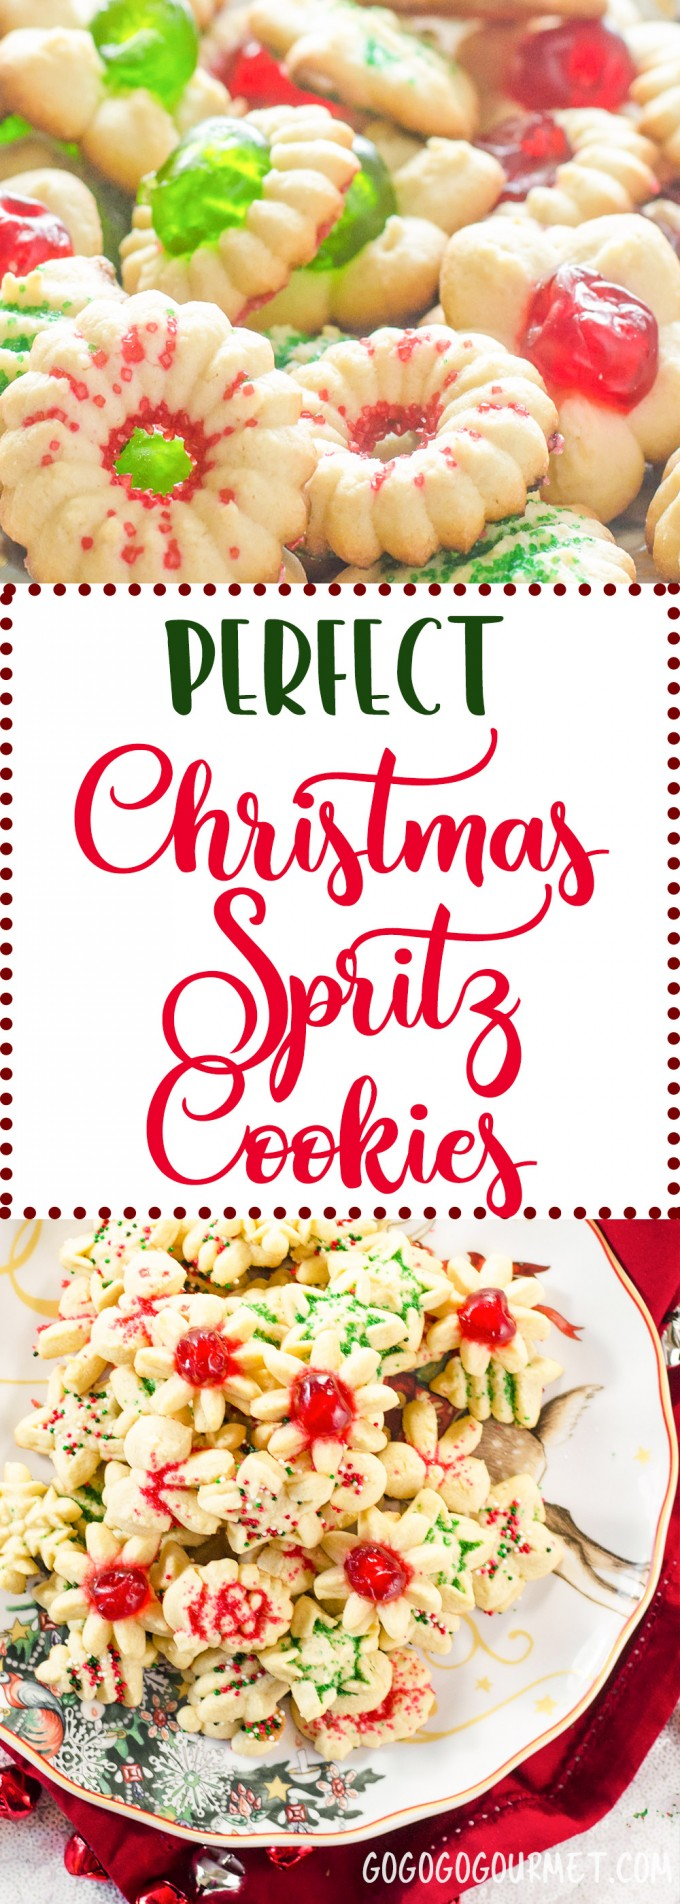 This is the best classic spritz cookie recipe out there! Perfect for Christmas cookie exchanges! A hint of almond, these cute little shapes are so fun to decorate! |